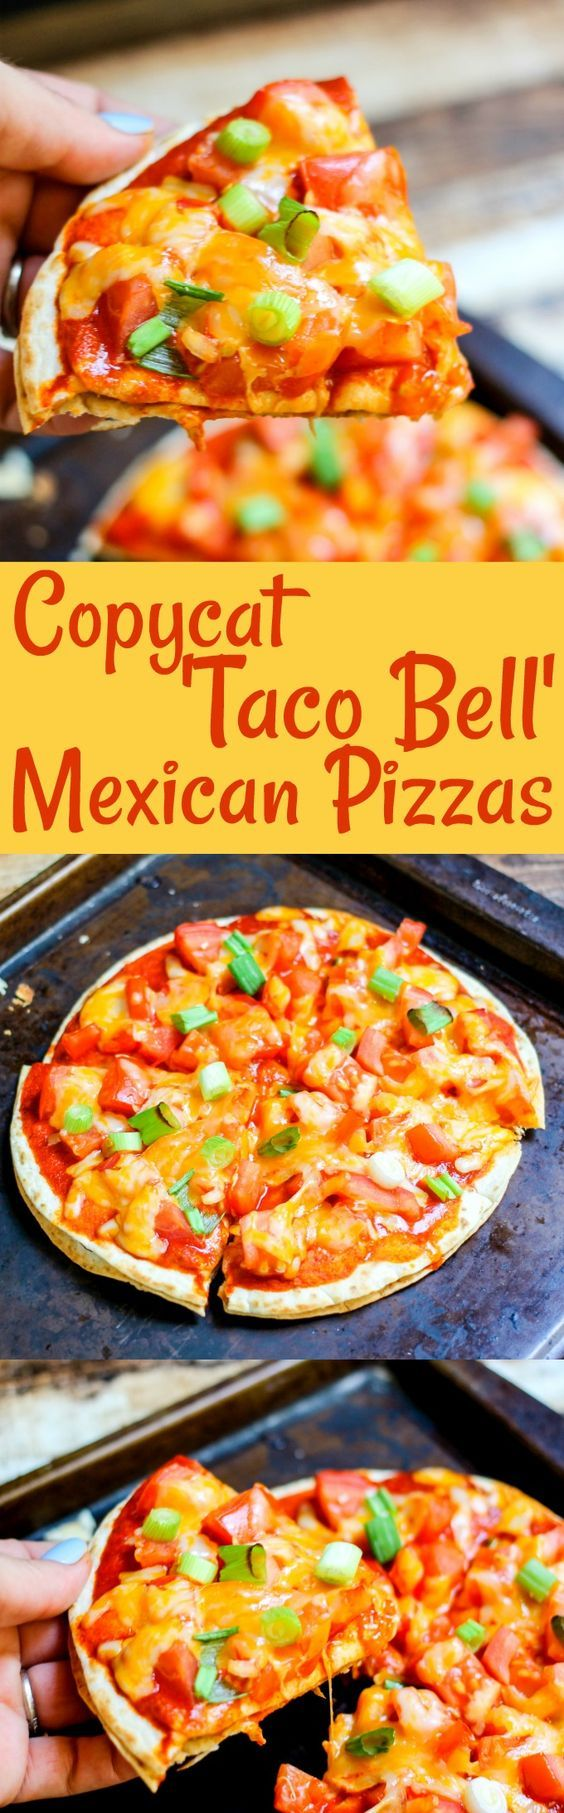 Copycat Taco Bell Mexican Pizzas are the PERFECT dinner recipe! With less than 400 calories, you can feel good about serving this fresh family meal!